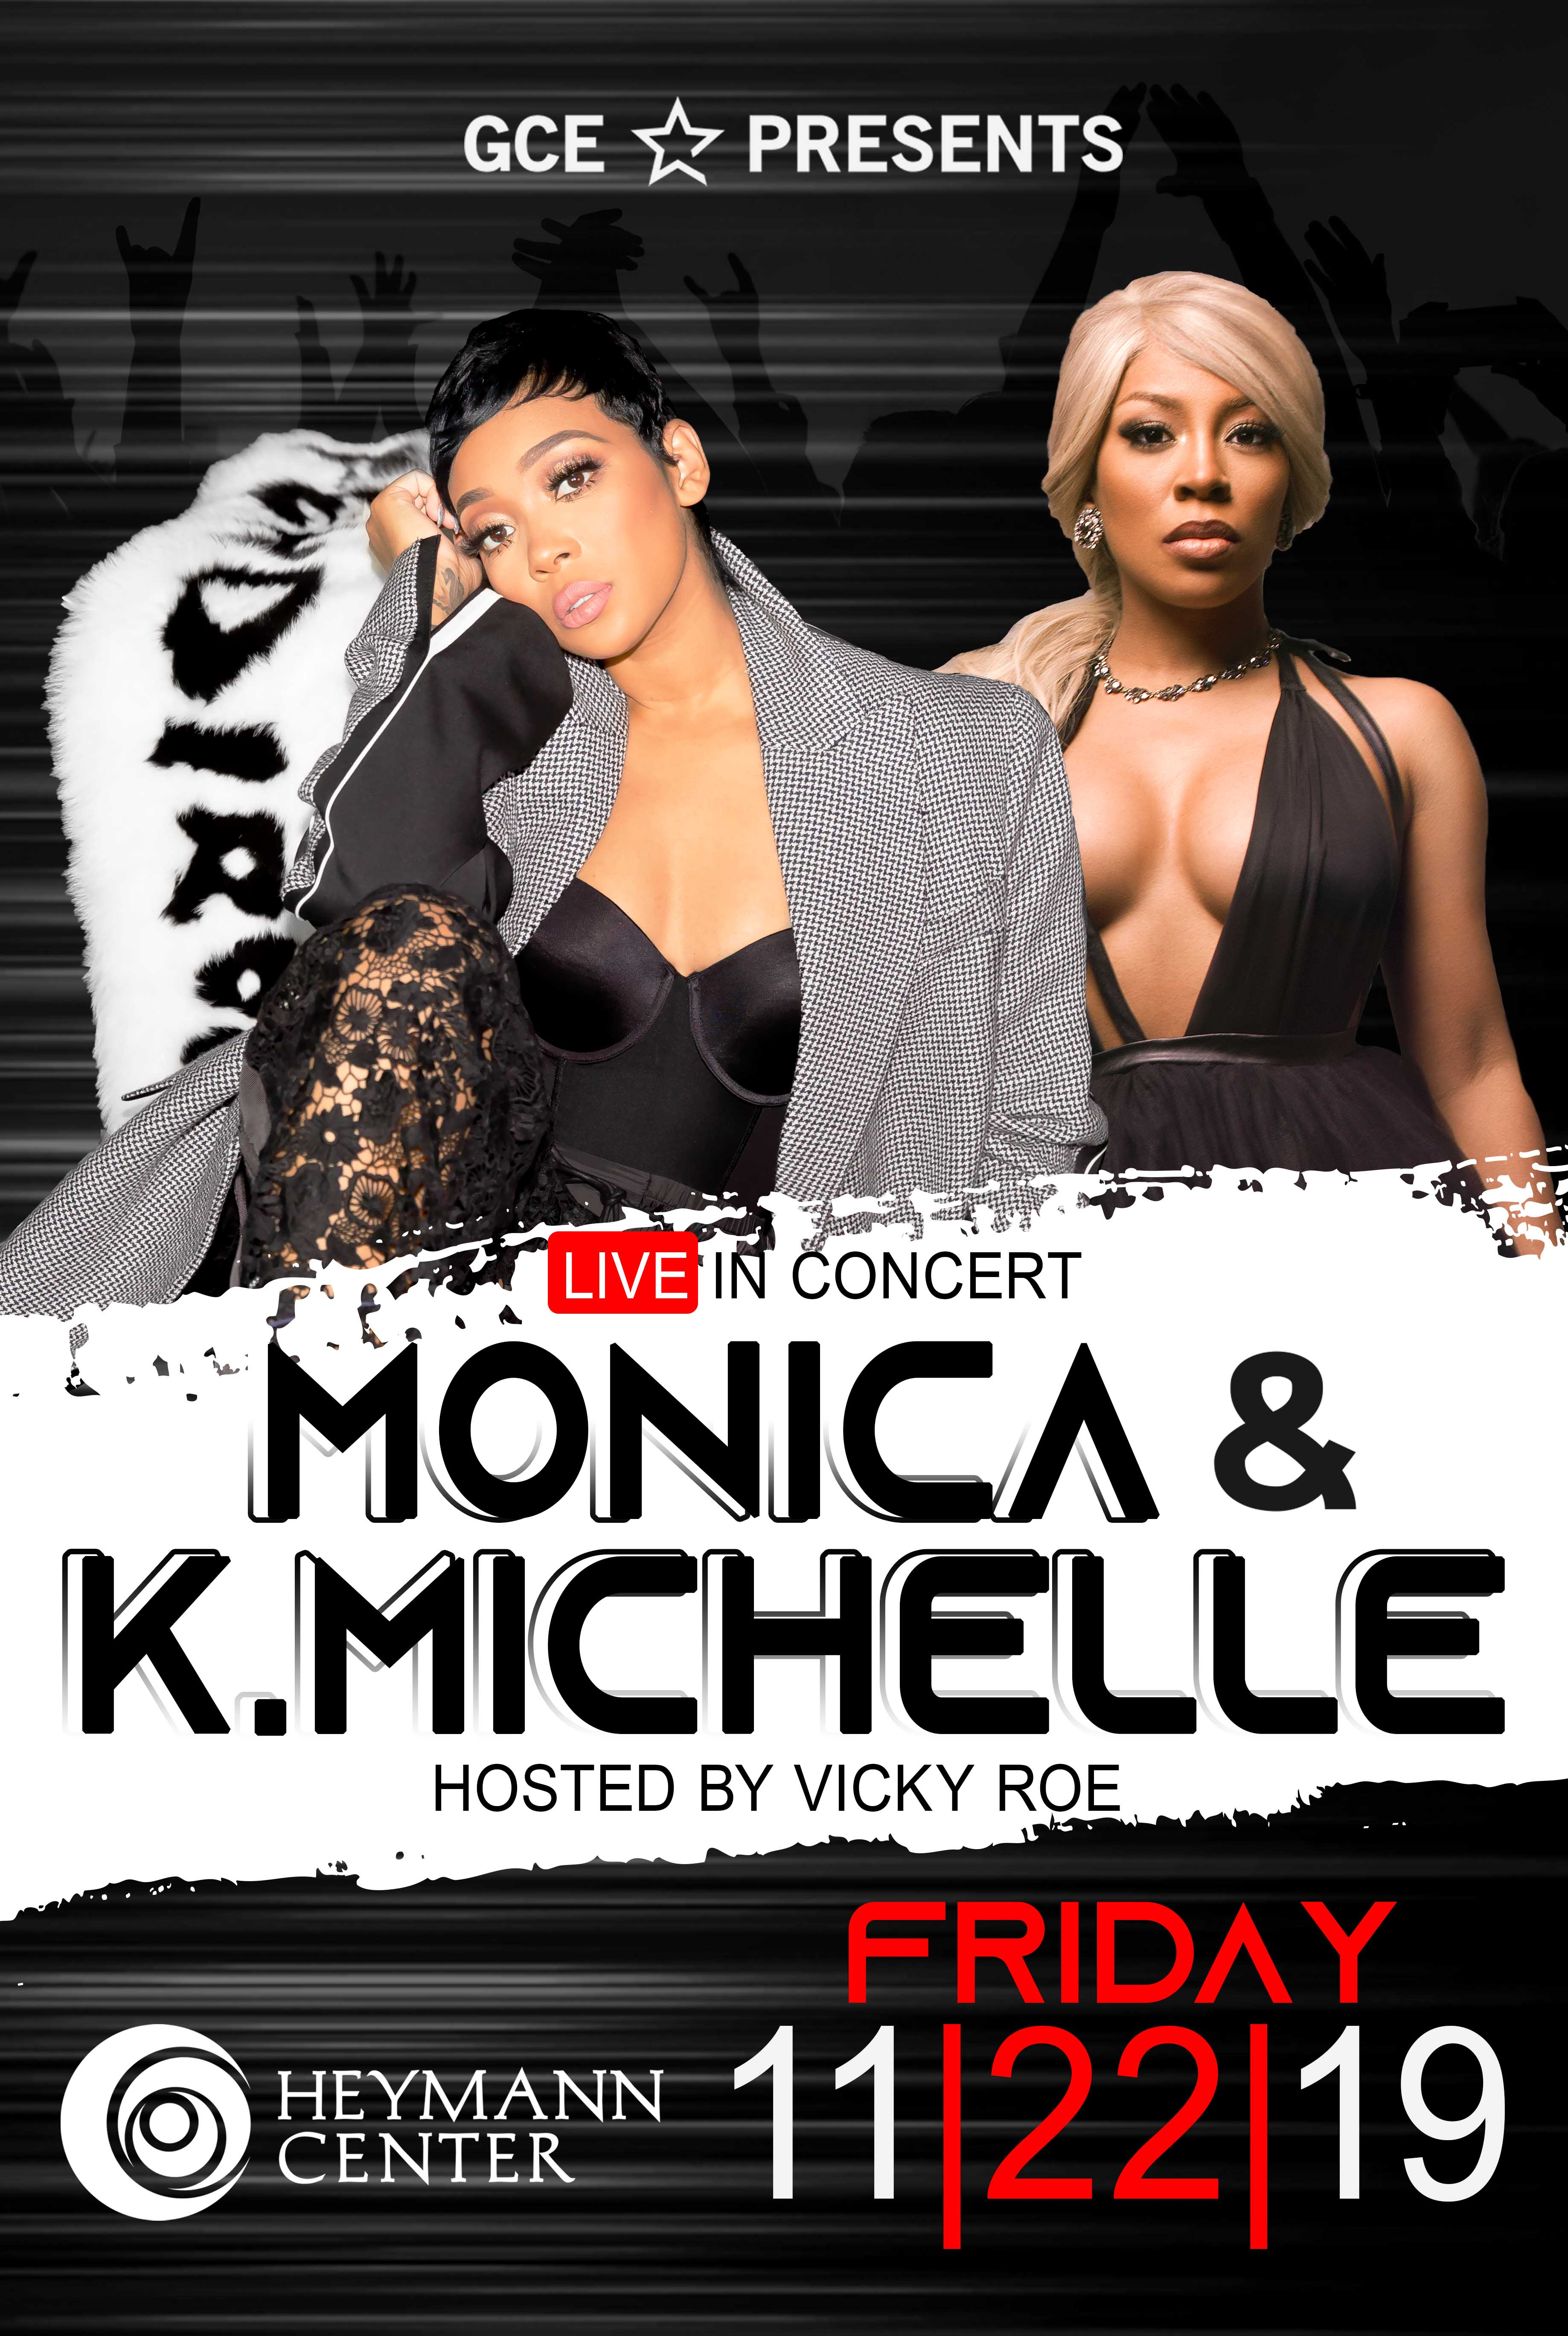 Monica and K. Michelle Live In Concert At The Heymann Center